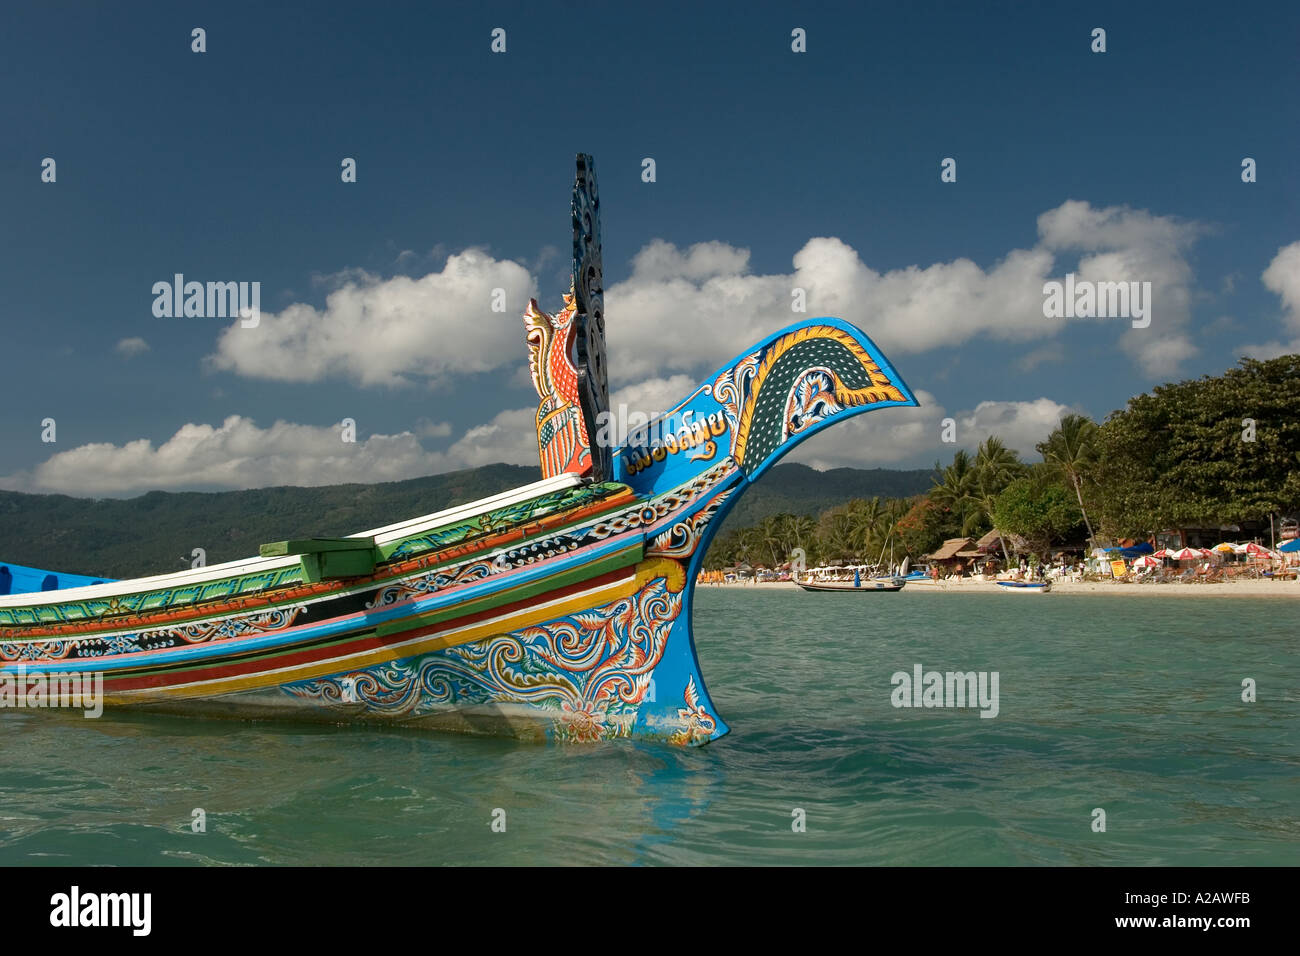 Thailand Ko Samui East Coast Chaweng beach prow of decoratively painted long tail boat and beach - Stock Image